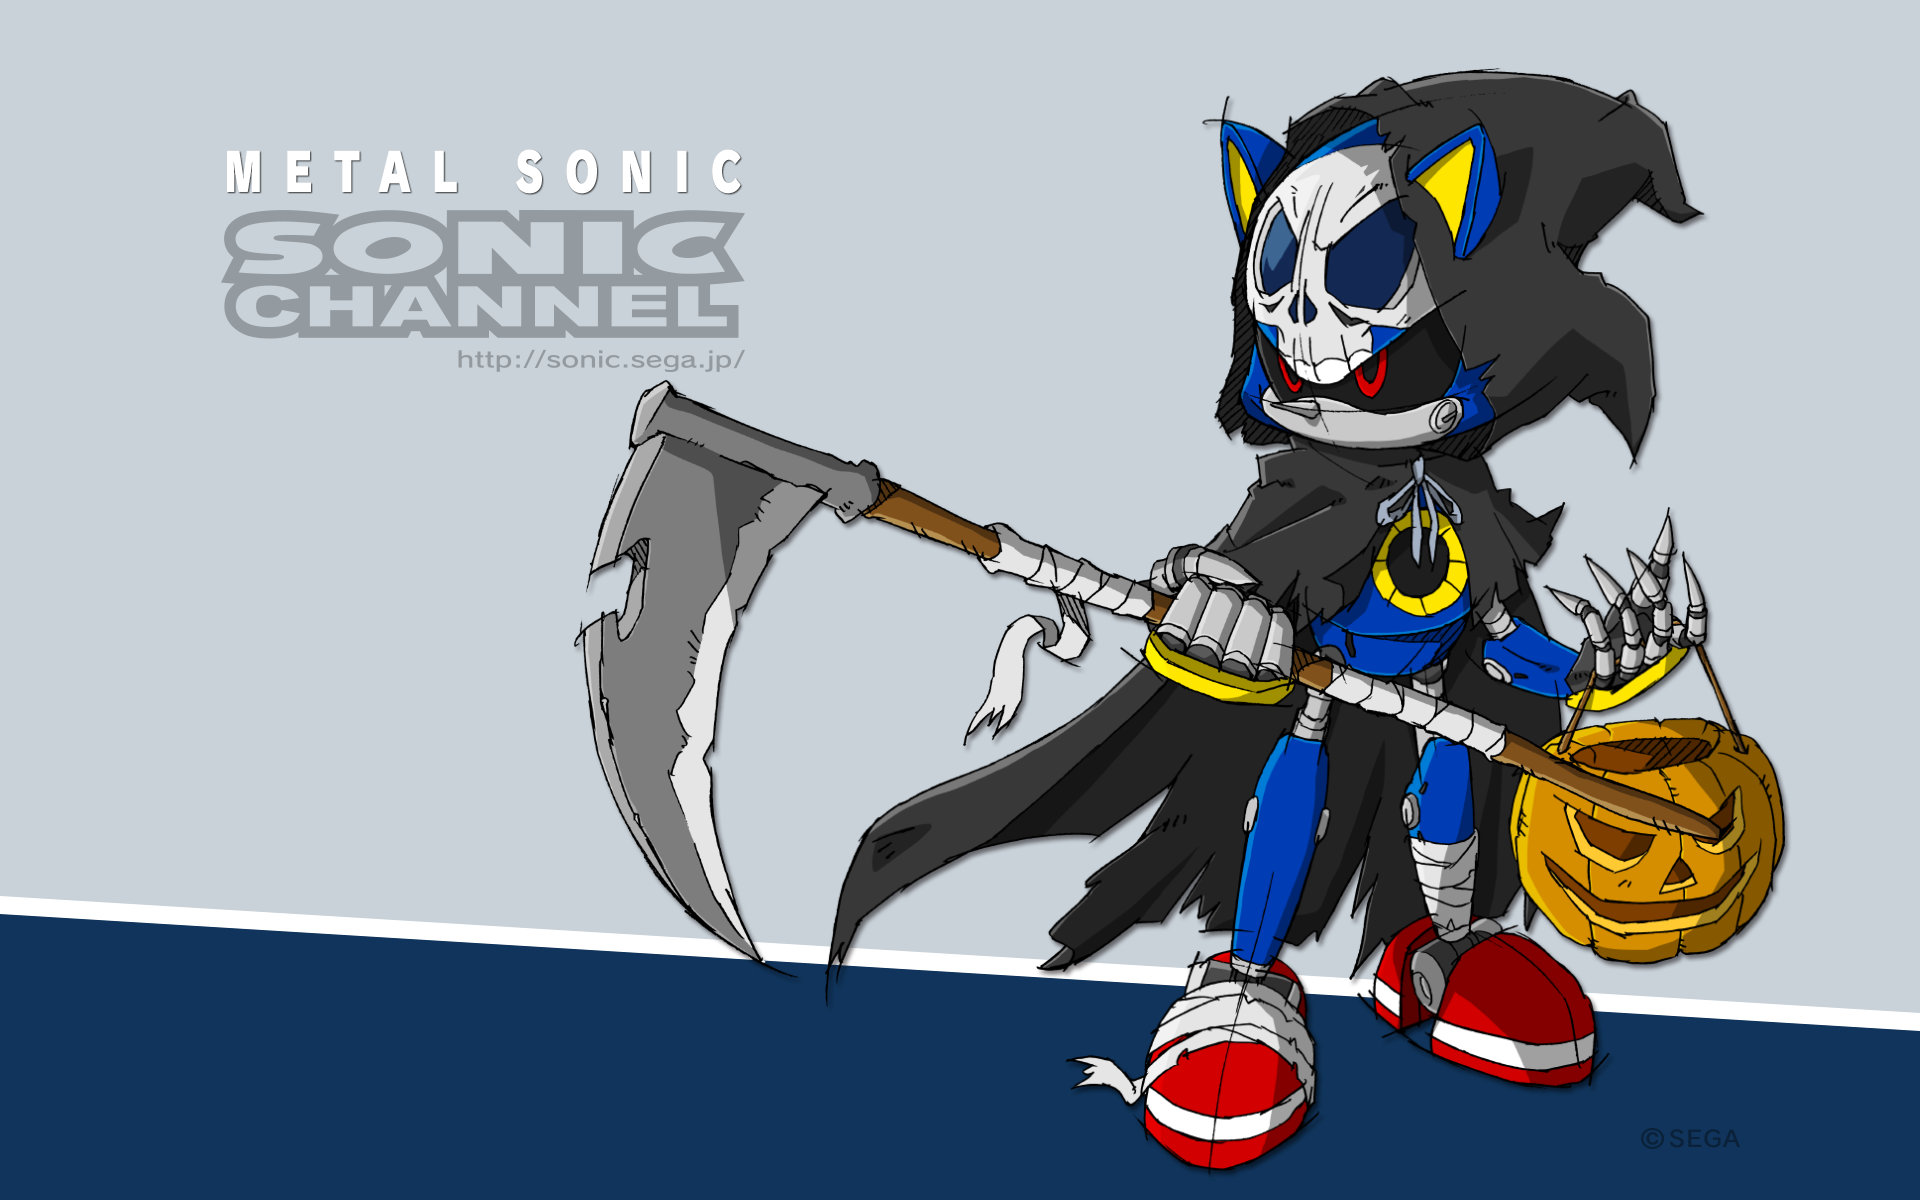 METAL SON I C CHANNEL Sonicsegajp